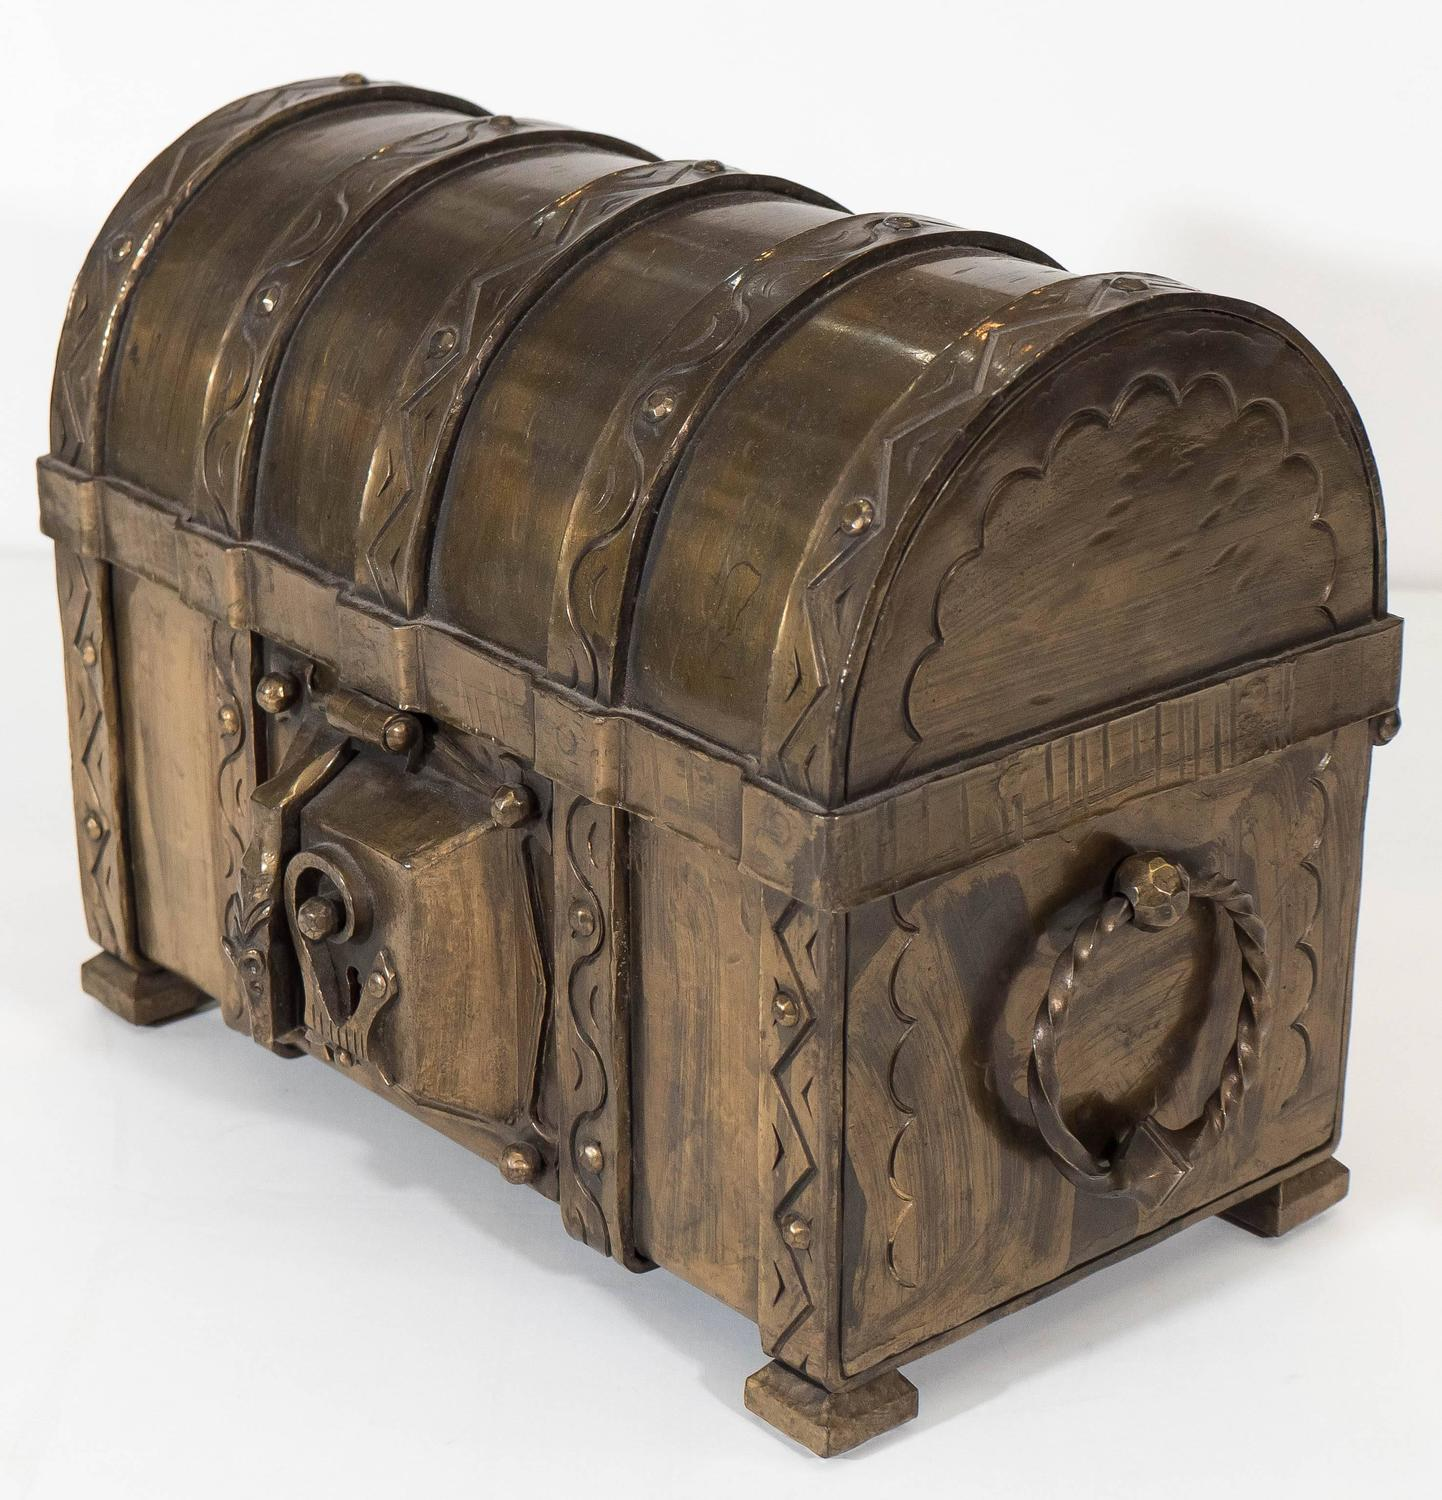 Decorative Boxes That Lock : Th century bronze locking strong box for sale at stdibs